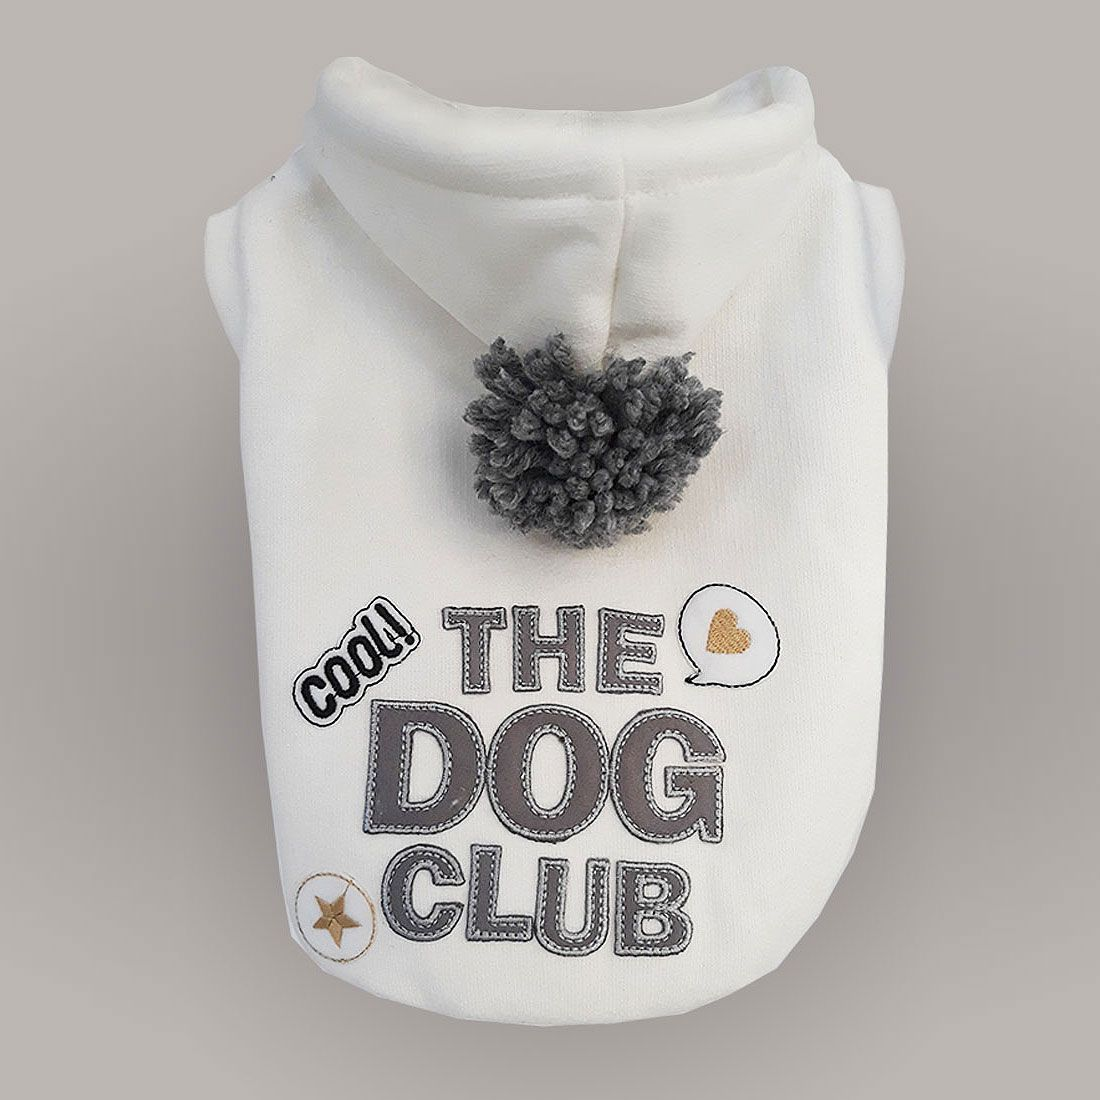 Moletom com Capuz para cachorro Off White Dog Club